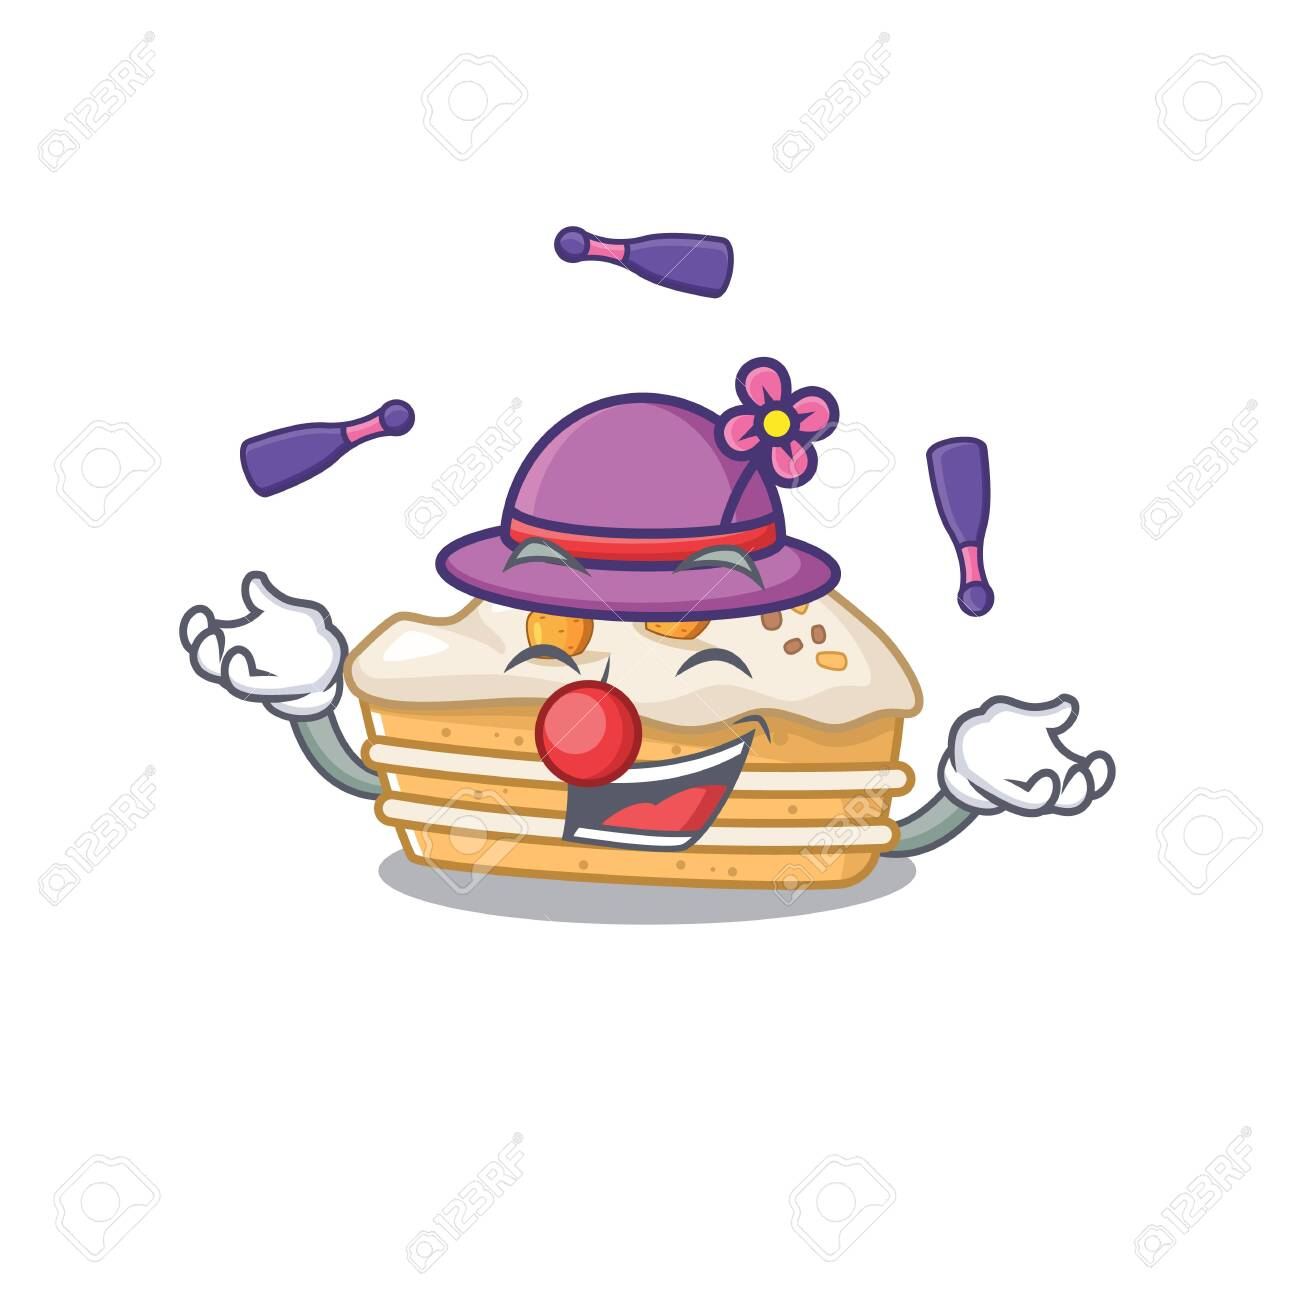 a lively carrot cake cartoon character design playing Juggling - 140171737